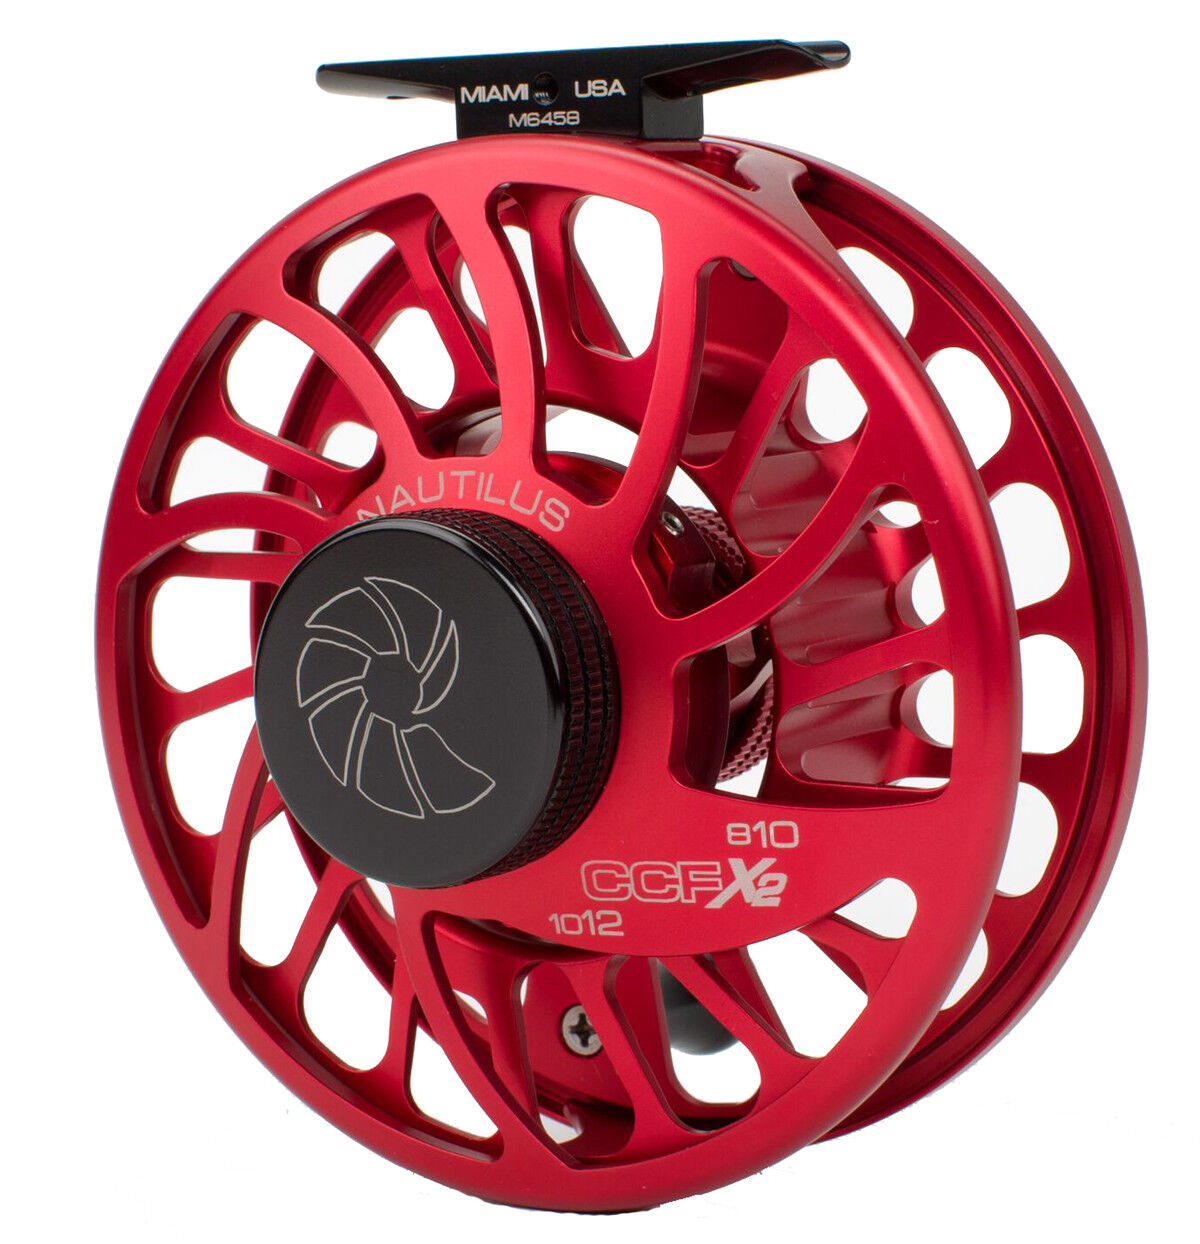 Nautilus CCF-X2 8 10 Fly Fishing Reel - Red (8-10 WT) NEW  - Free US Ship